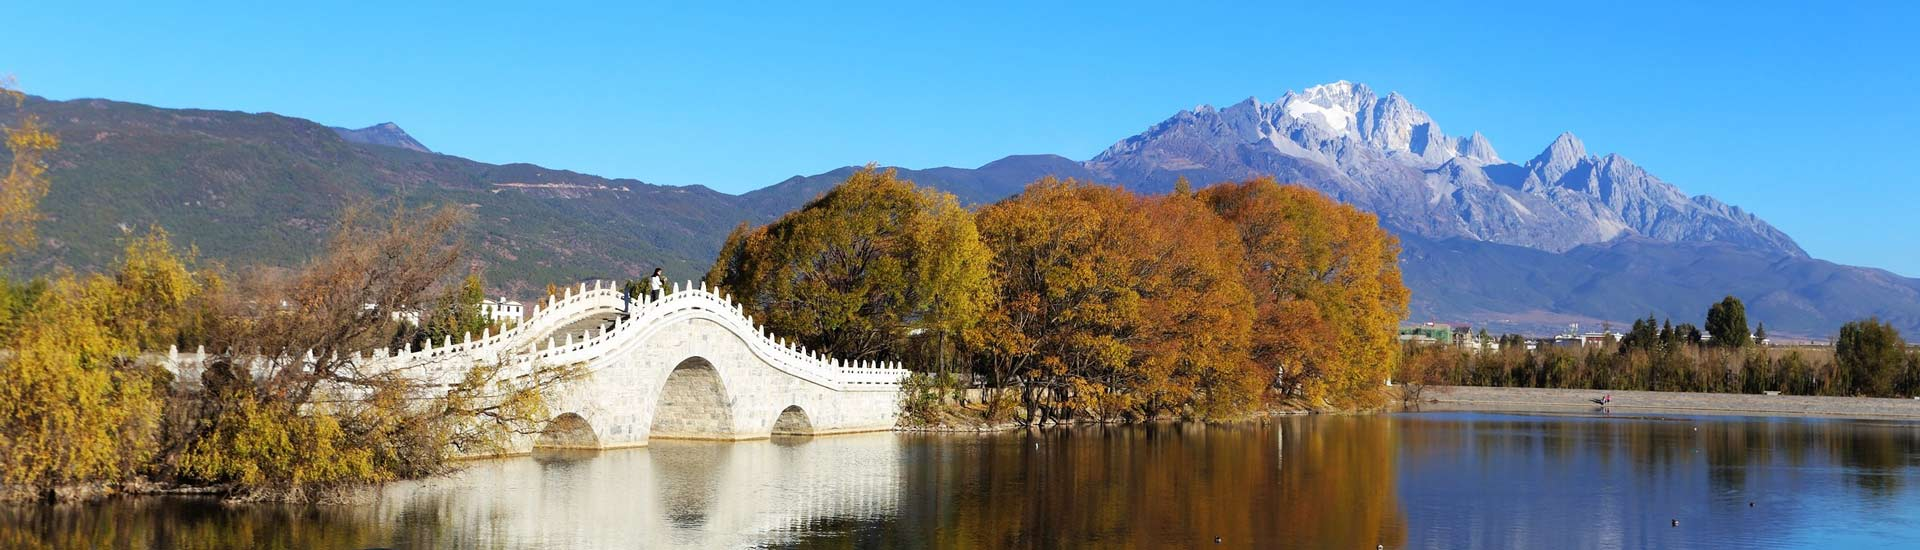 6 Days Tour to Lijiang- Lugu Lake- Dali